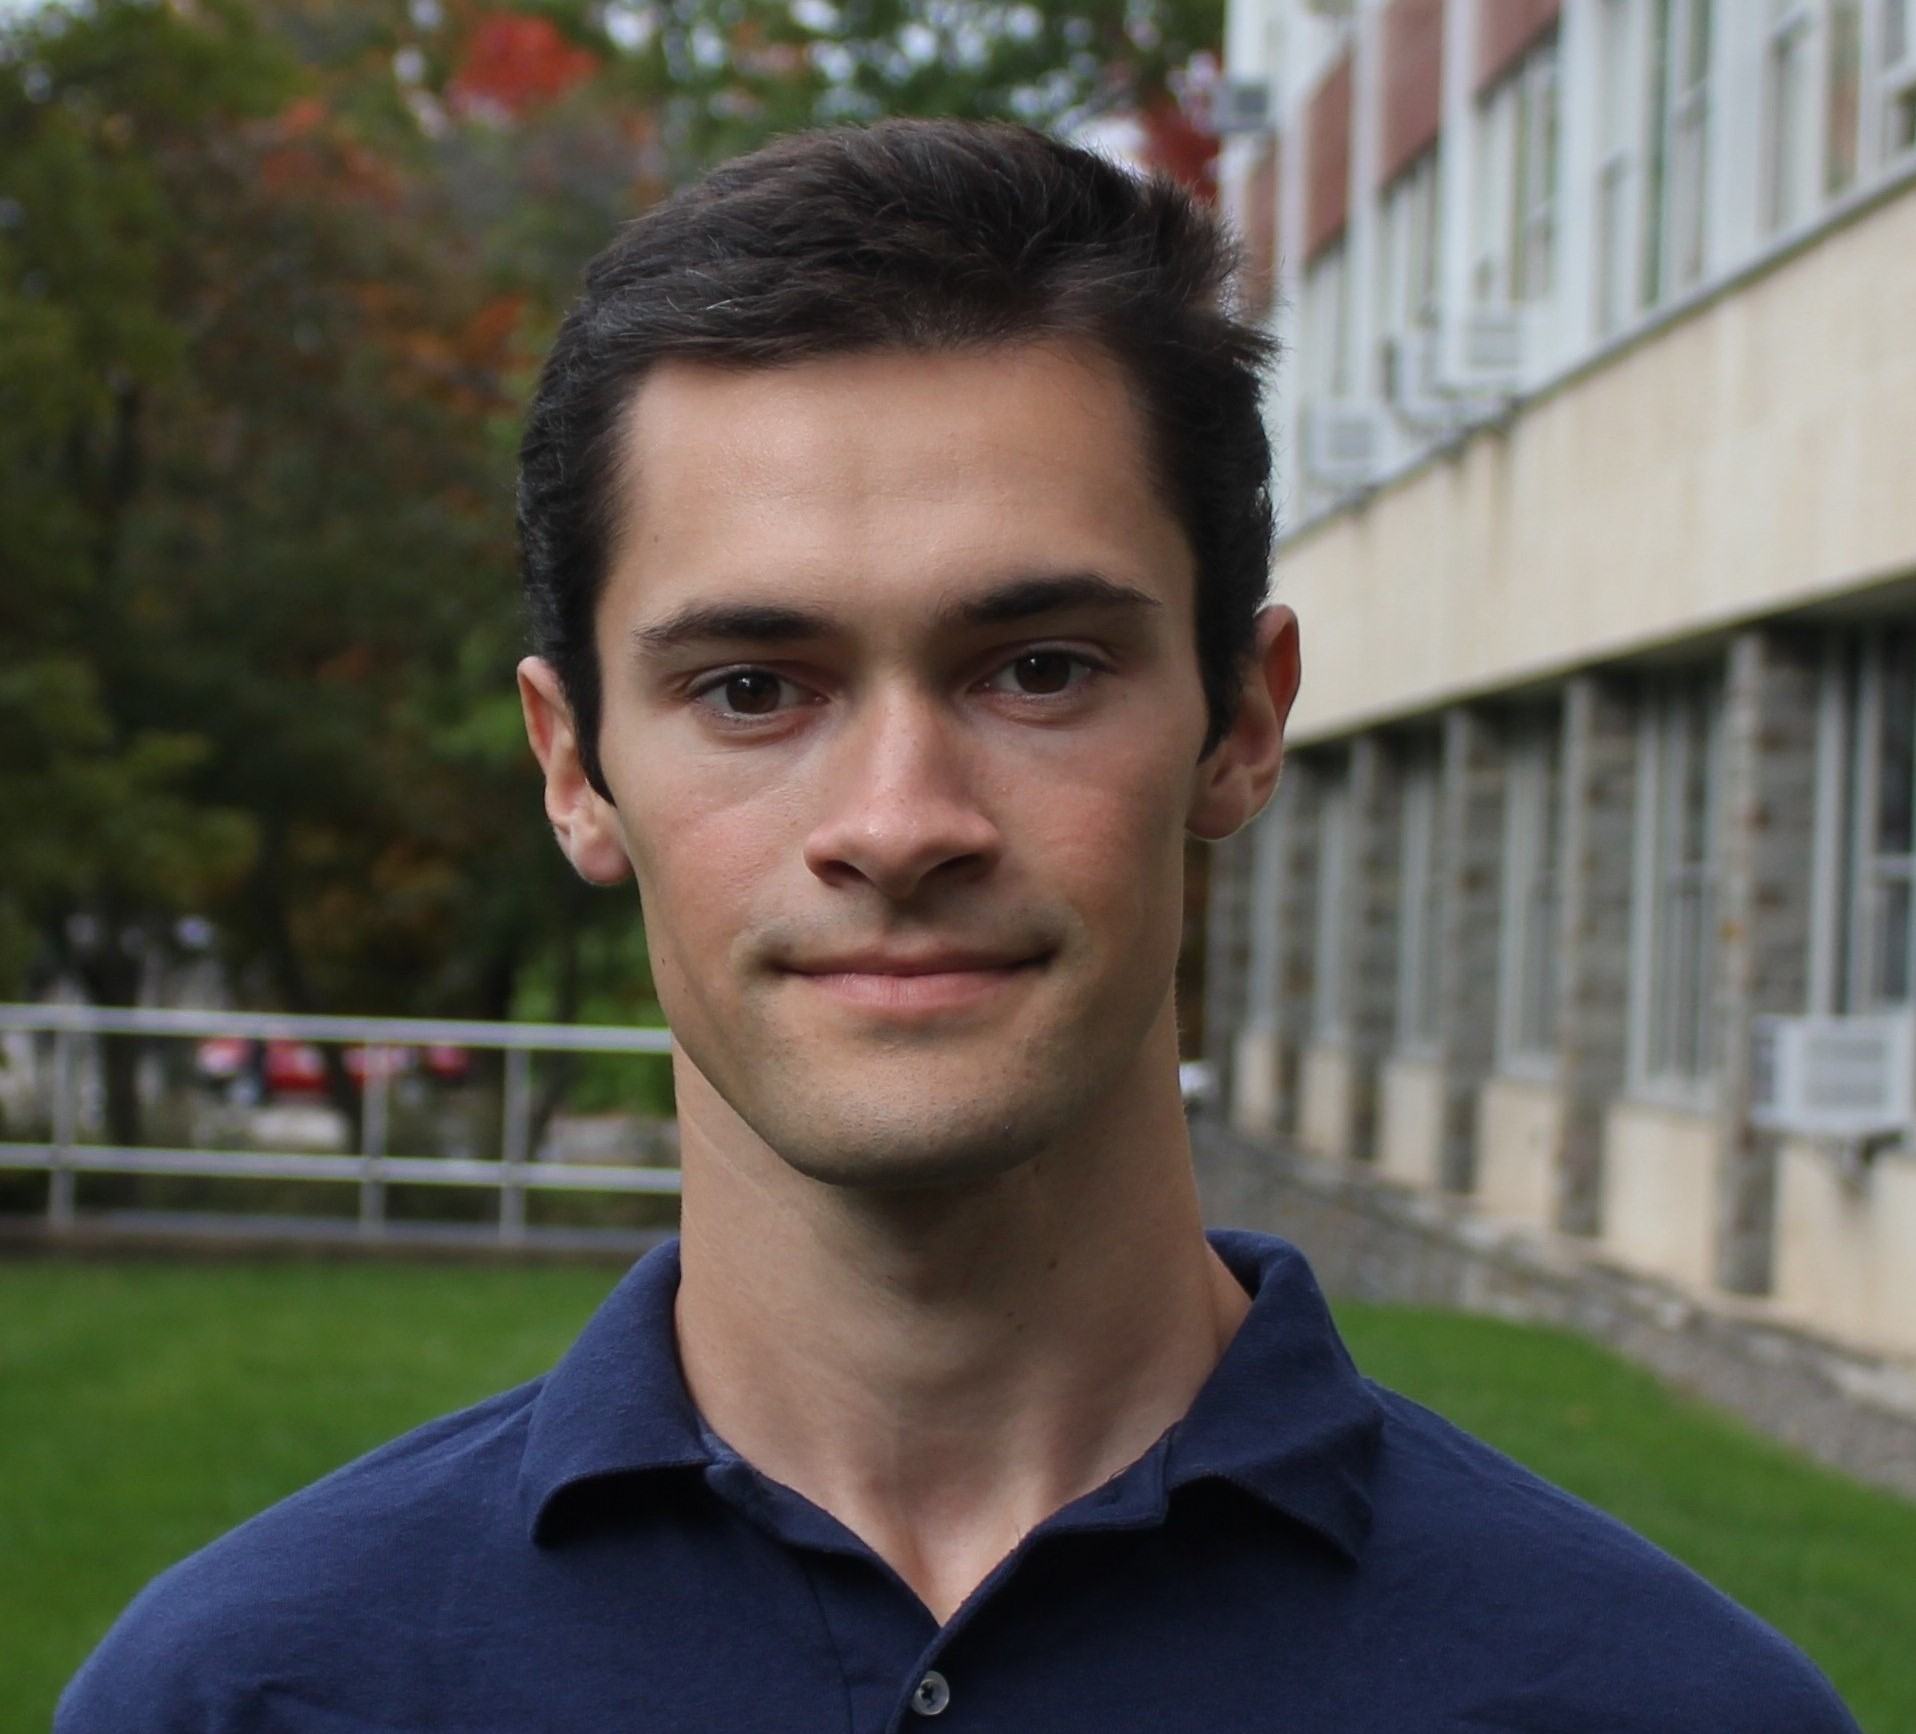 Mr. Guzman has been with the AguaClara Cornell program since 2015, and received his BS and ME from Cornell in 2017. Starting in August 2018, he will be working for Agua Para el Pueblo in Honduras designing and implementing AguaClara technologies. His professional aspirations include propagating innovative water and wastewater technologies in the global south.